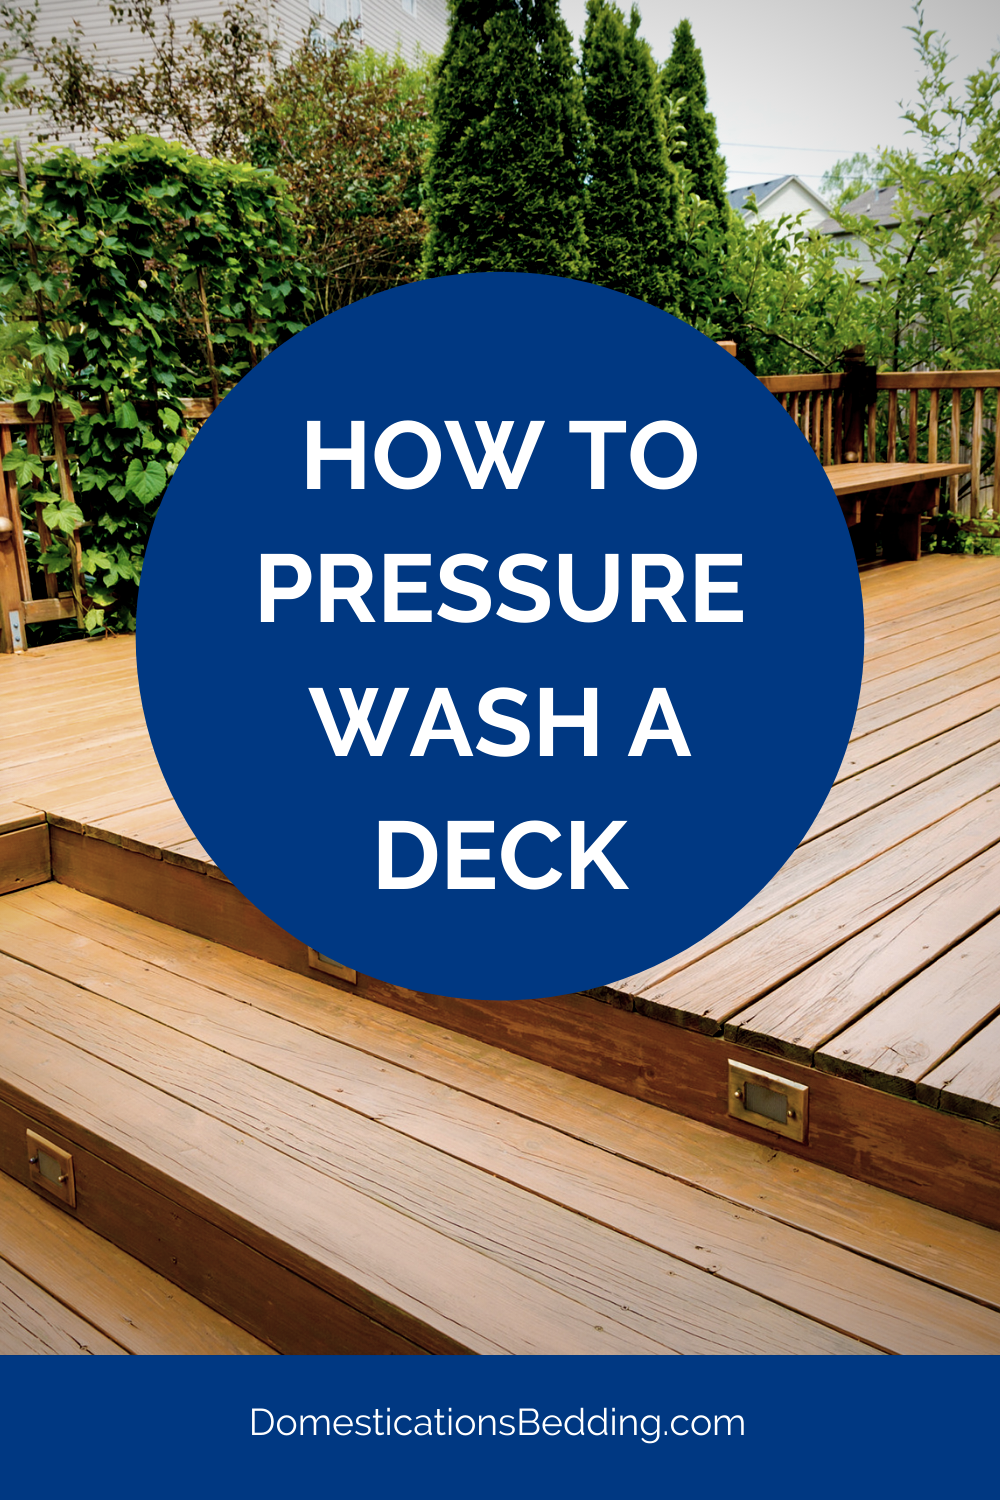 How to Pressure Wash a Deck